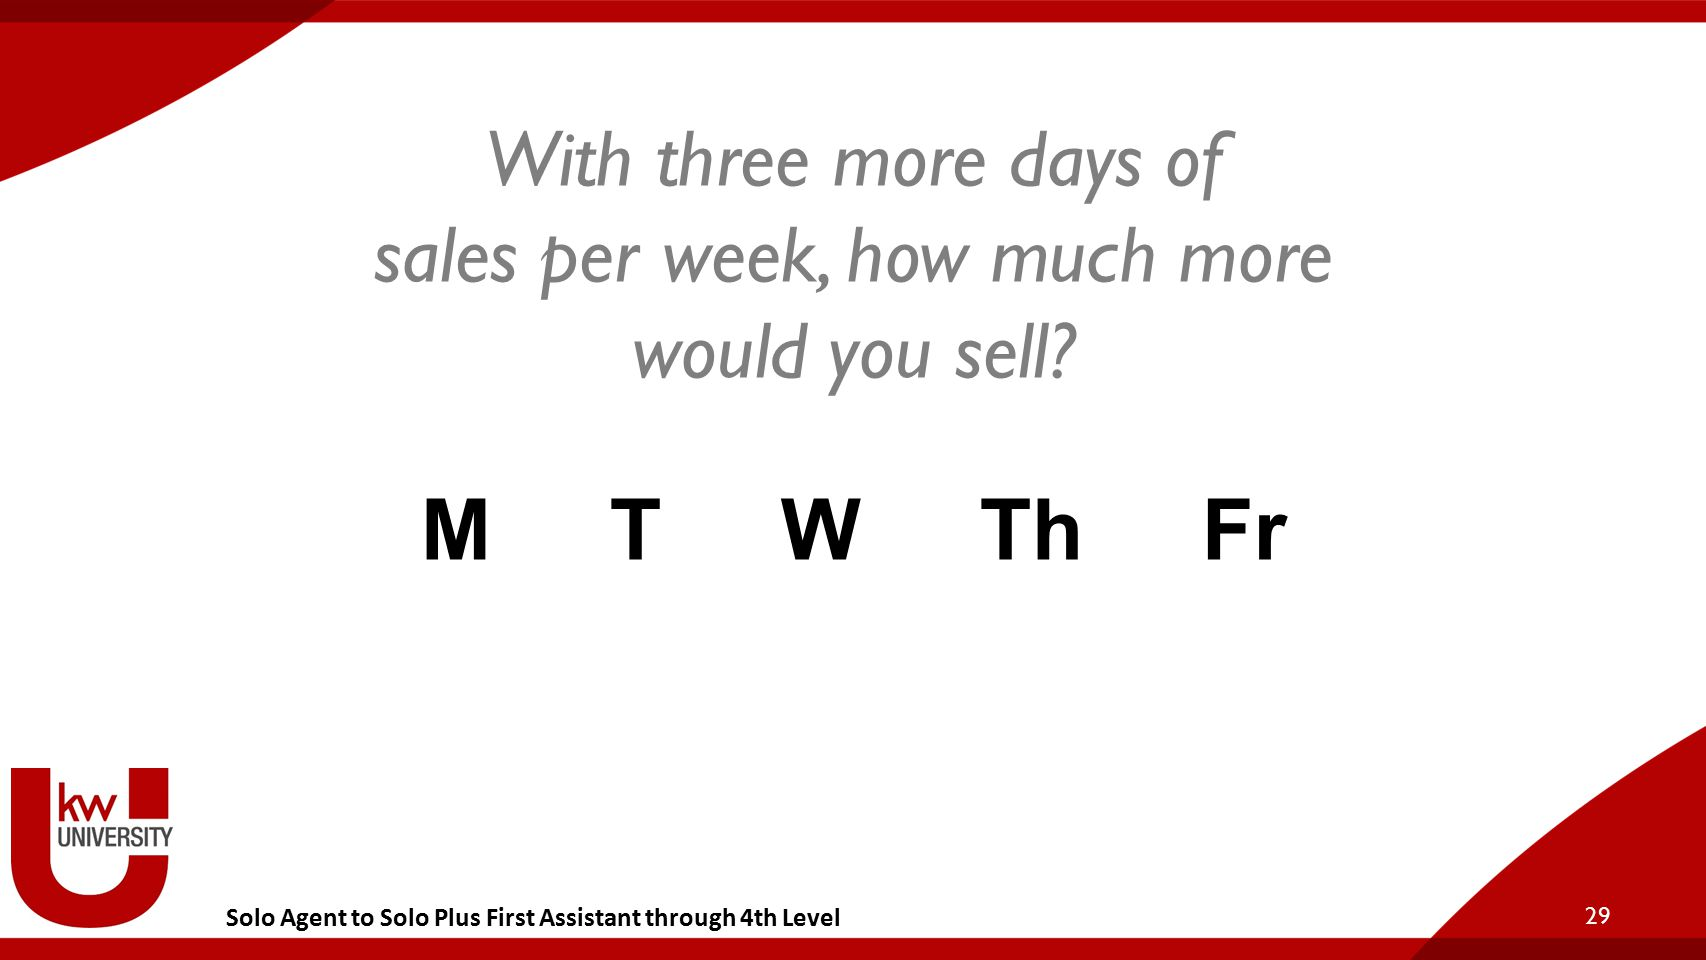 Solo Agent to Solo Plus First Assistant through 4th Level 29 With three more days of sales per week, how much more would you sell? M T W Th F r